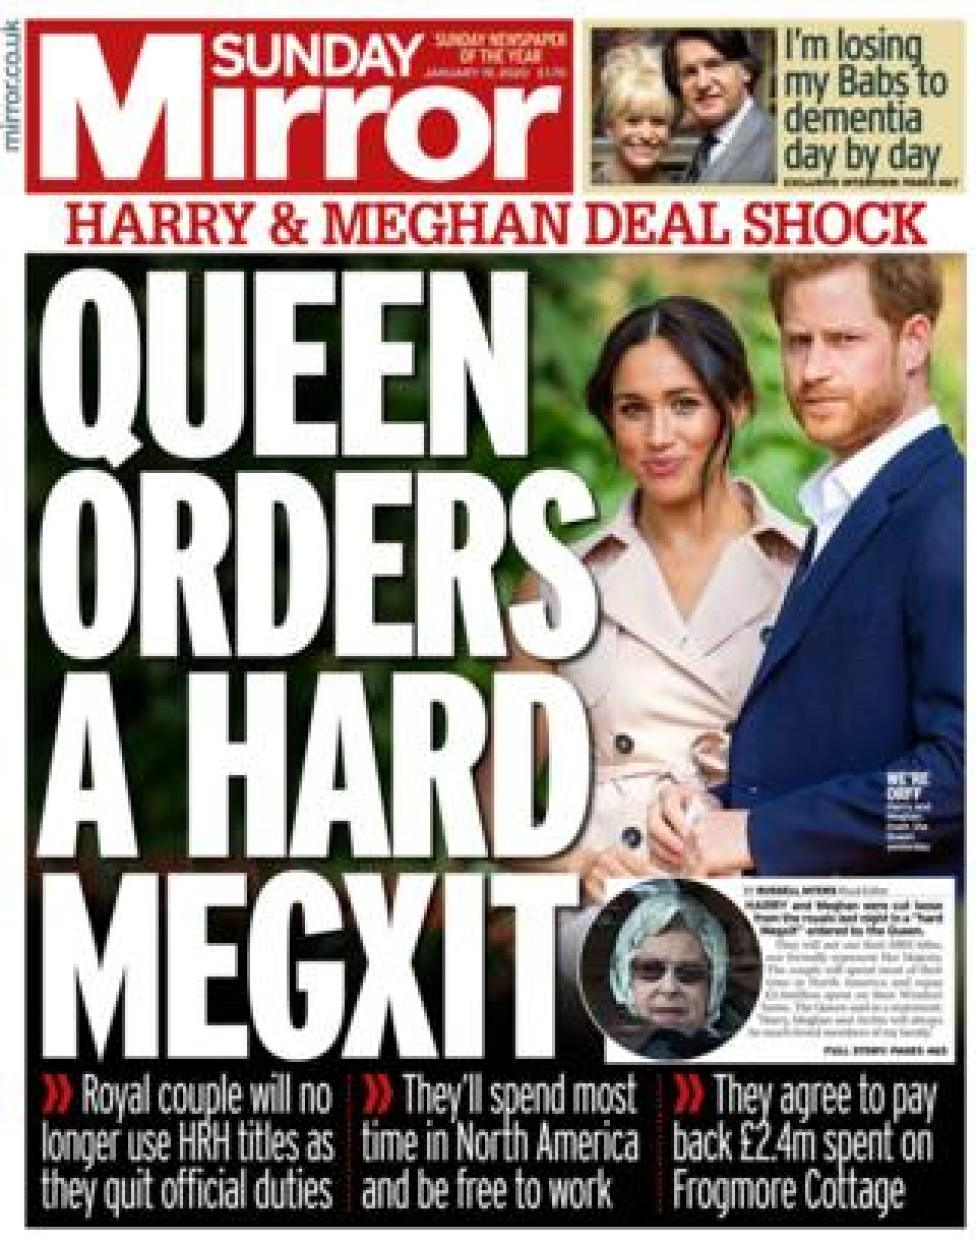 Sunday Mirror front page 19/01/20